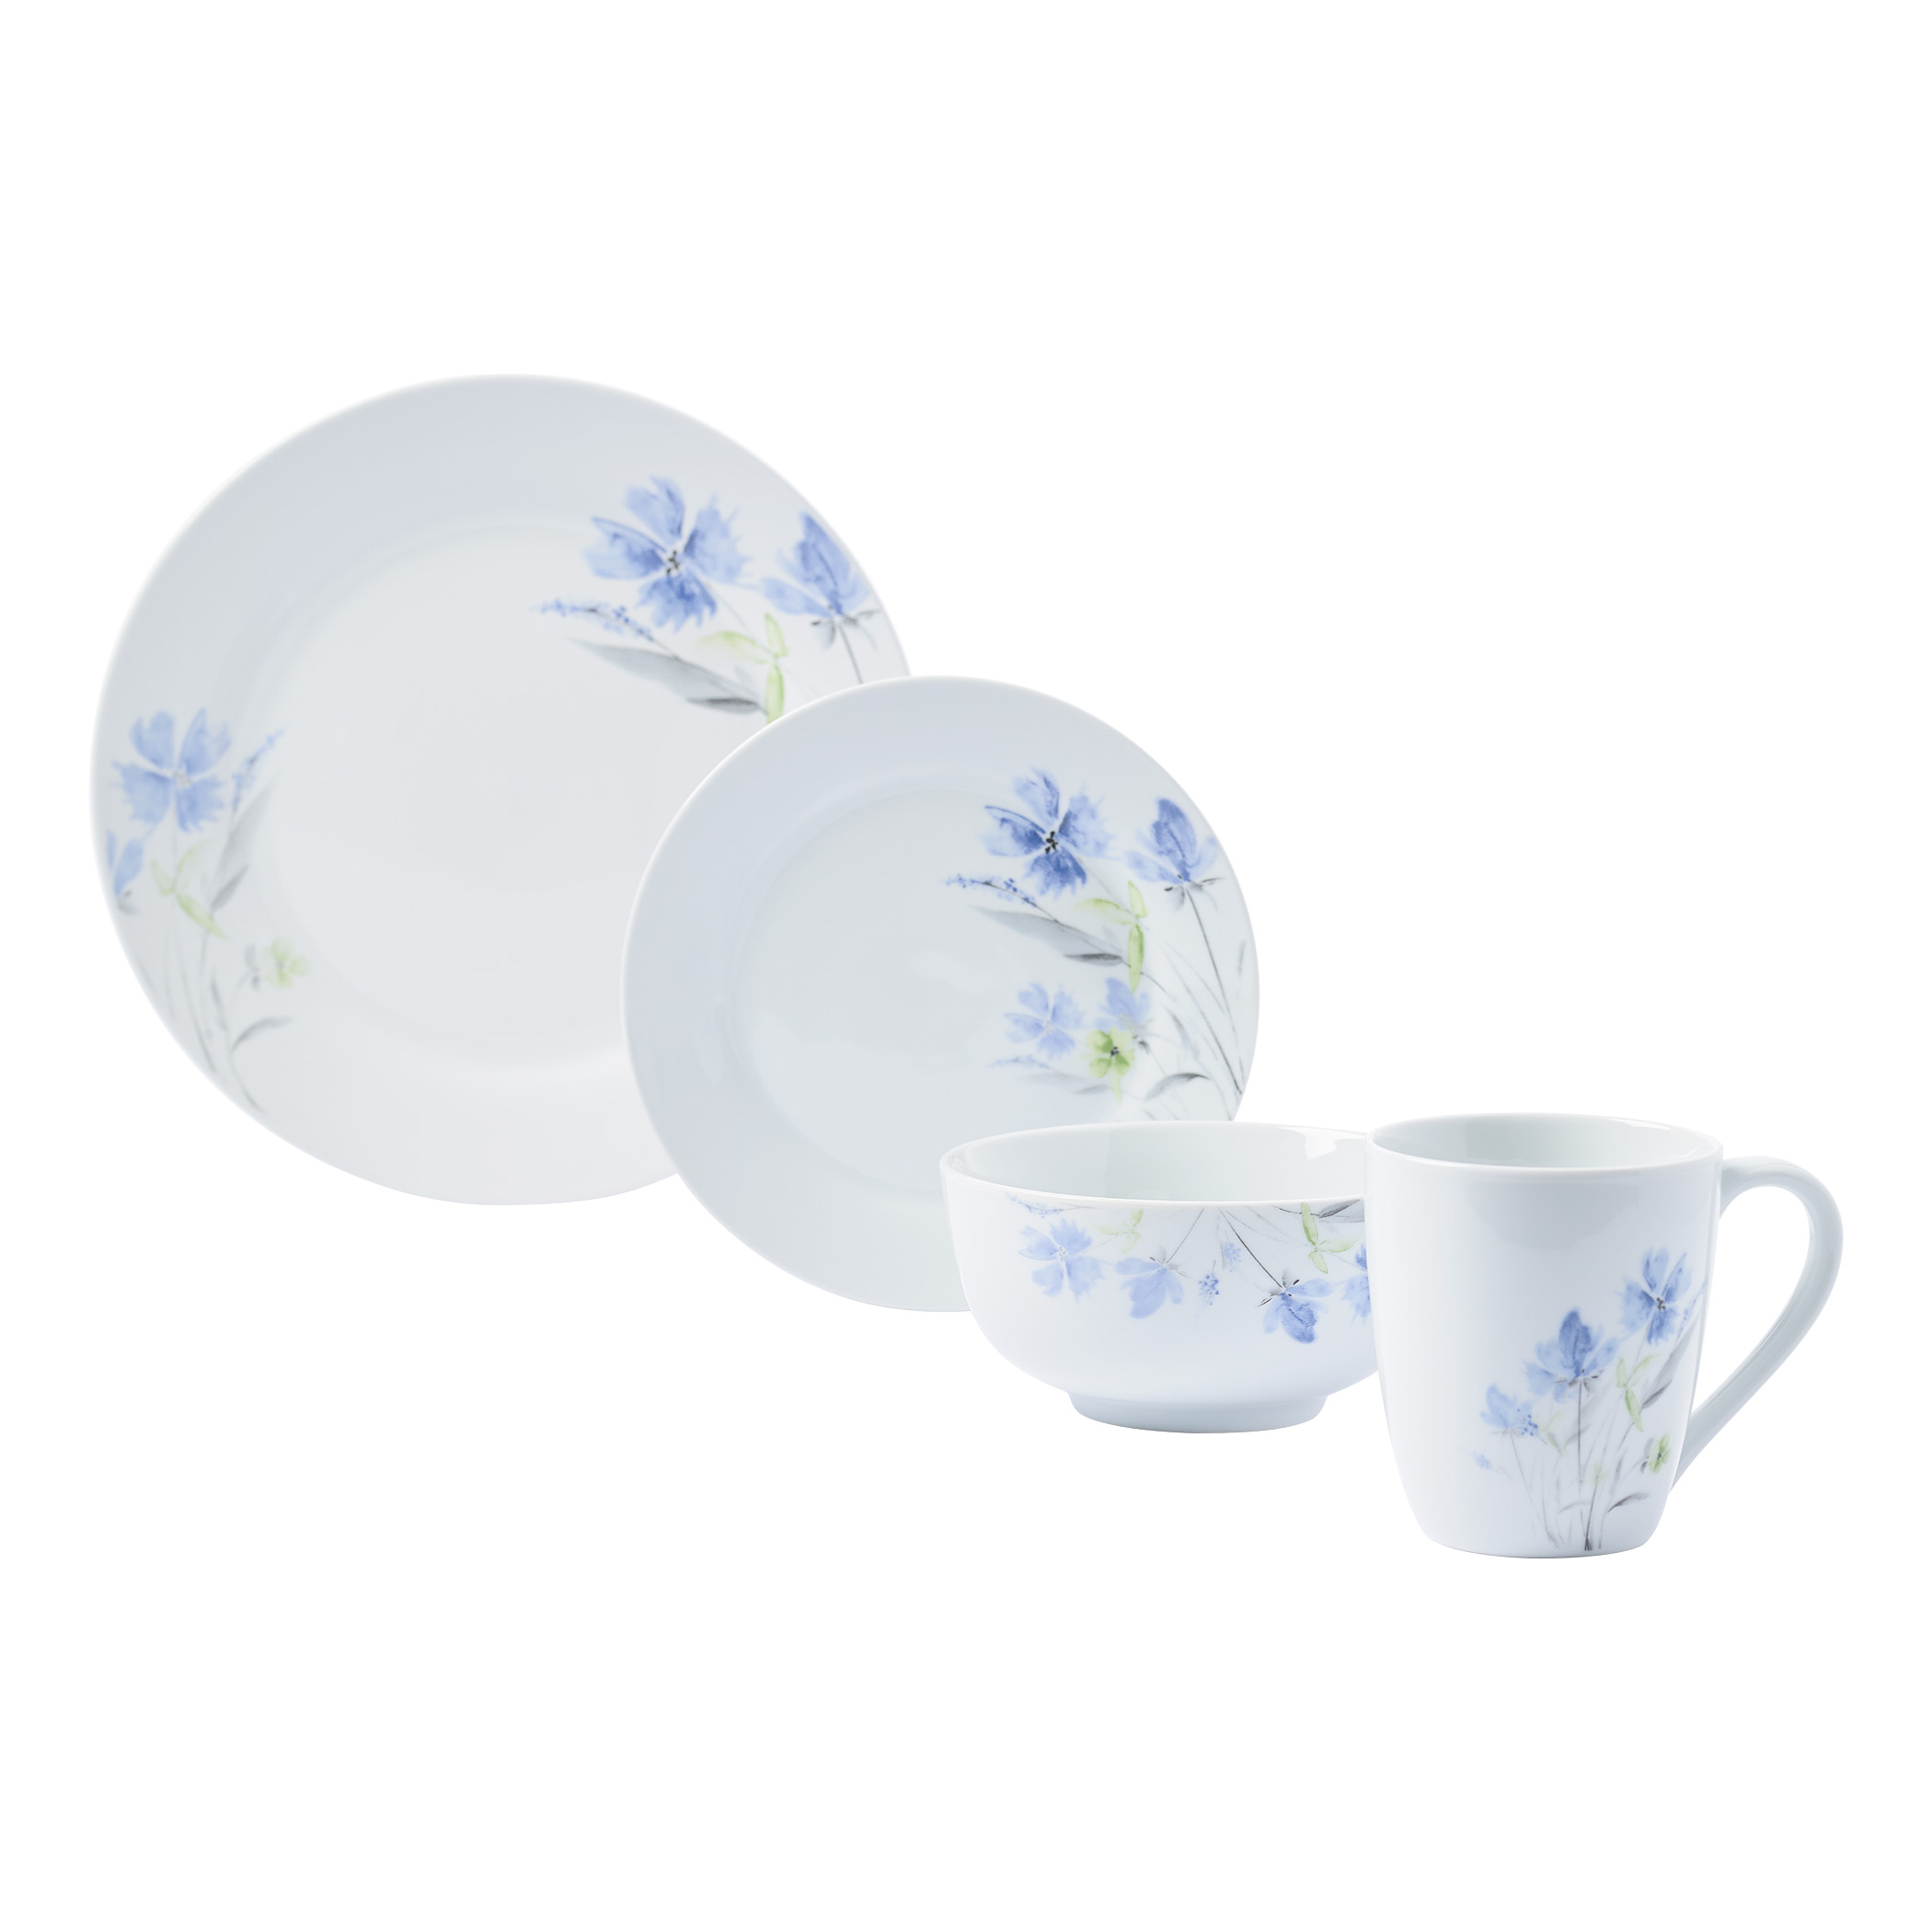 16 Piece Porcelain Dinnerware Set by Tabletops Gallery®  sc 1 st  Tabletops Unlimited & Tabletops Gallery | Dinnerware Sets Stoneware \u0026 Bakeware | TTU Brands